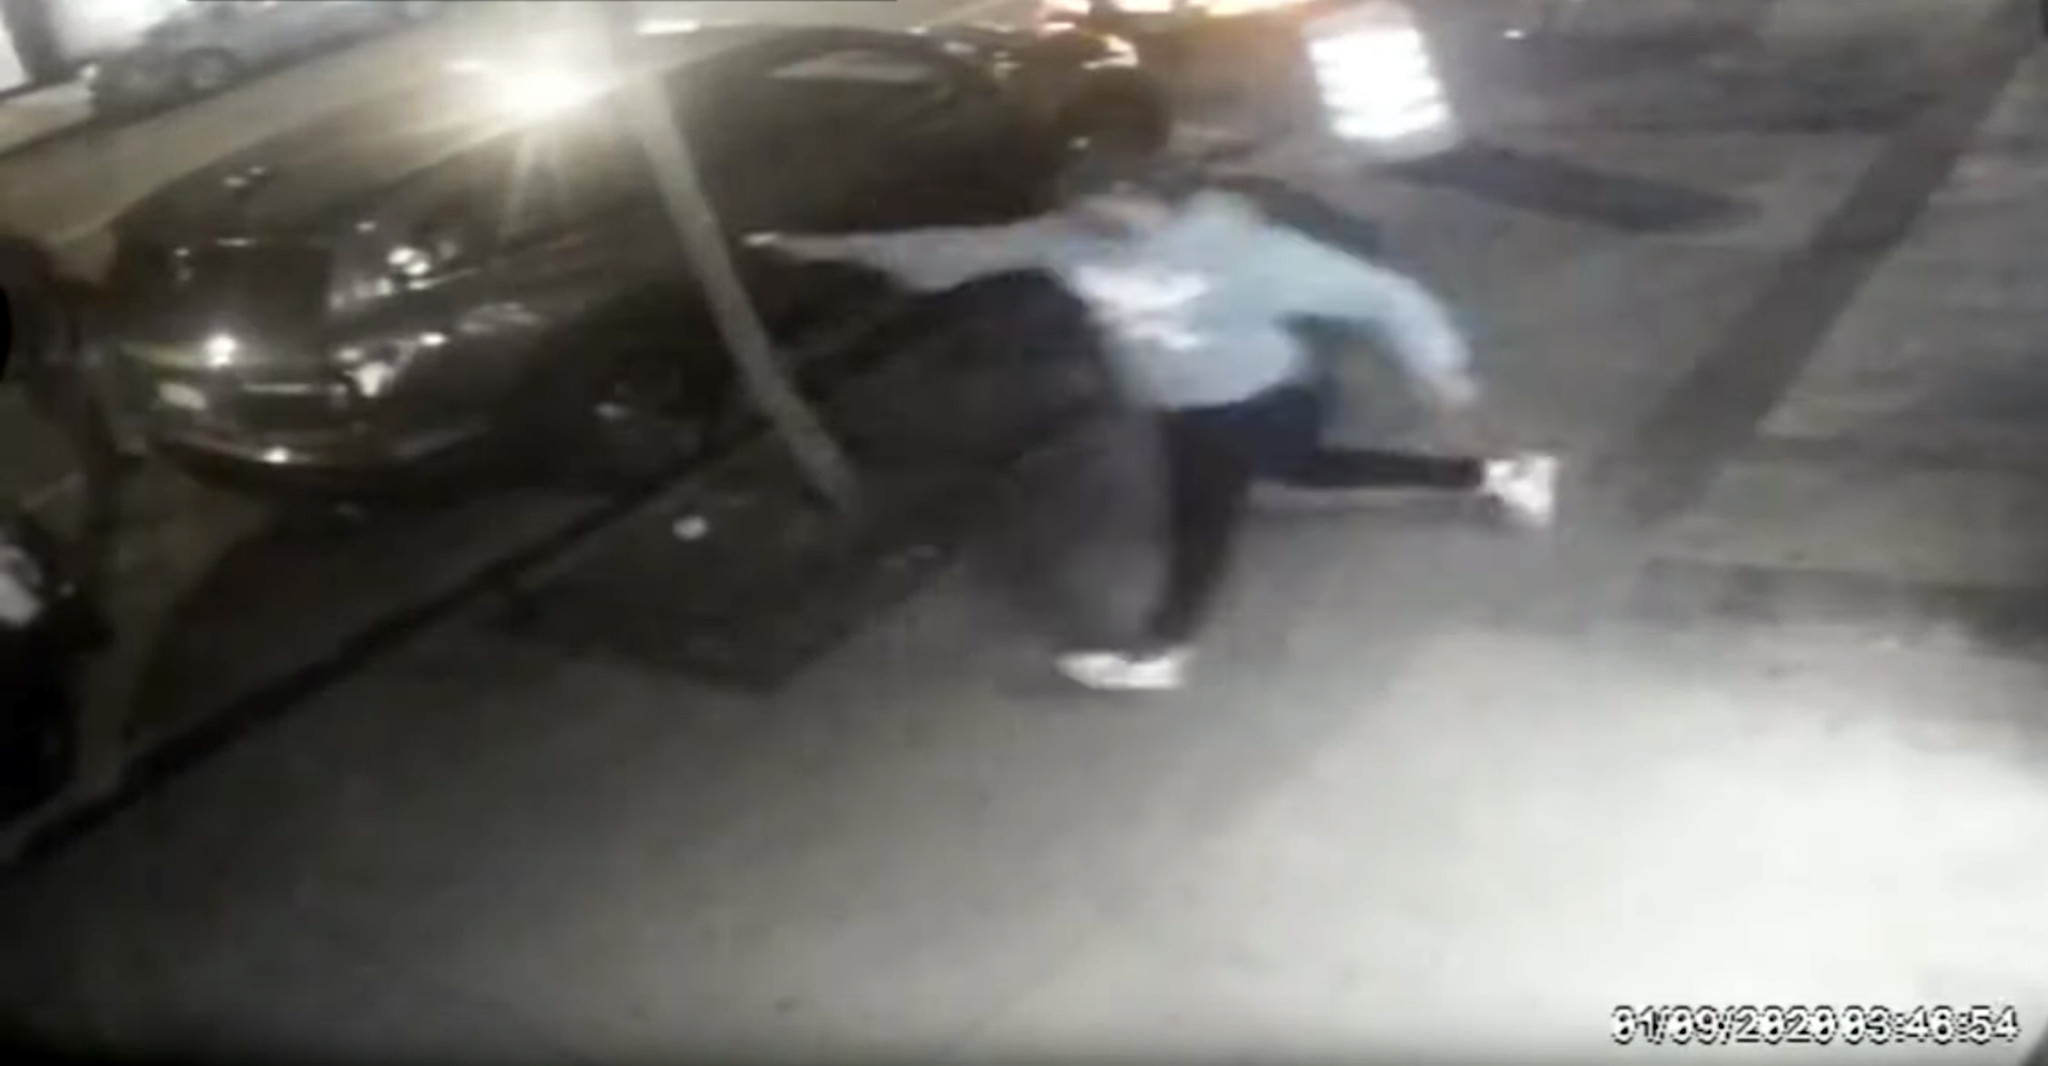 SEE IT: Cops release body cam footage of fatal NYC police-involved shooting